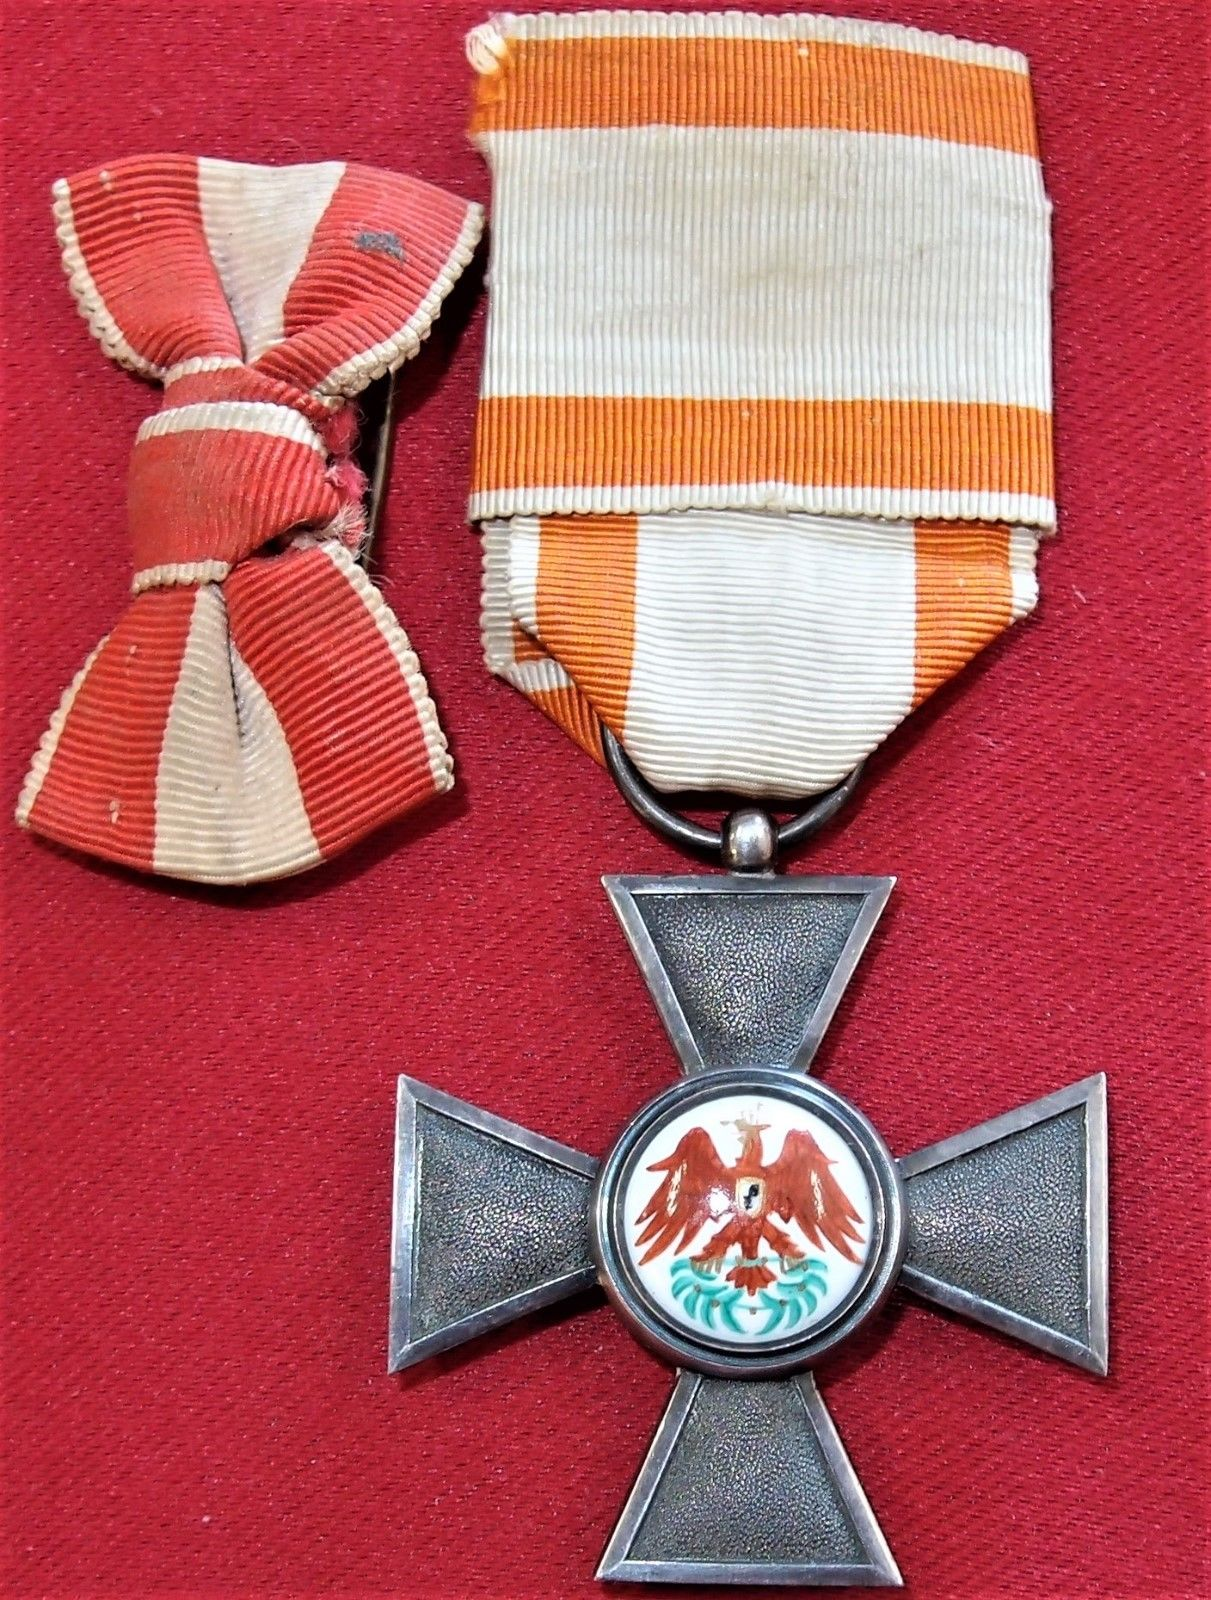 VINTAGE & RARE WW1 GERMAN PRUSSIAN ORDER OF THE RED EAGLE 4th CLASS MEDAL